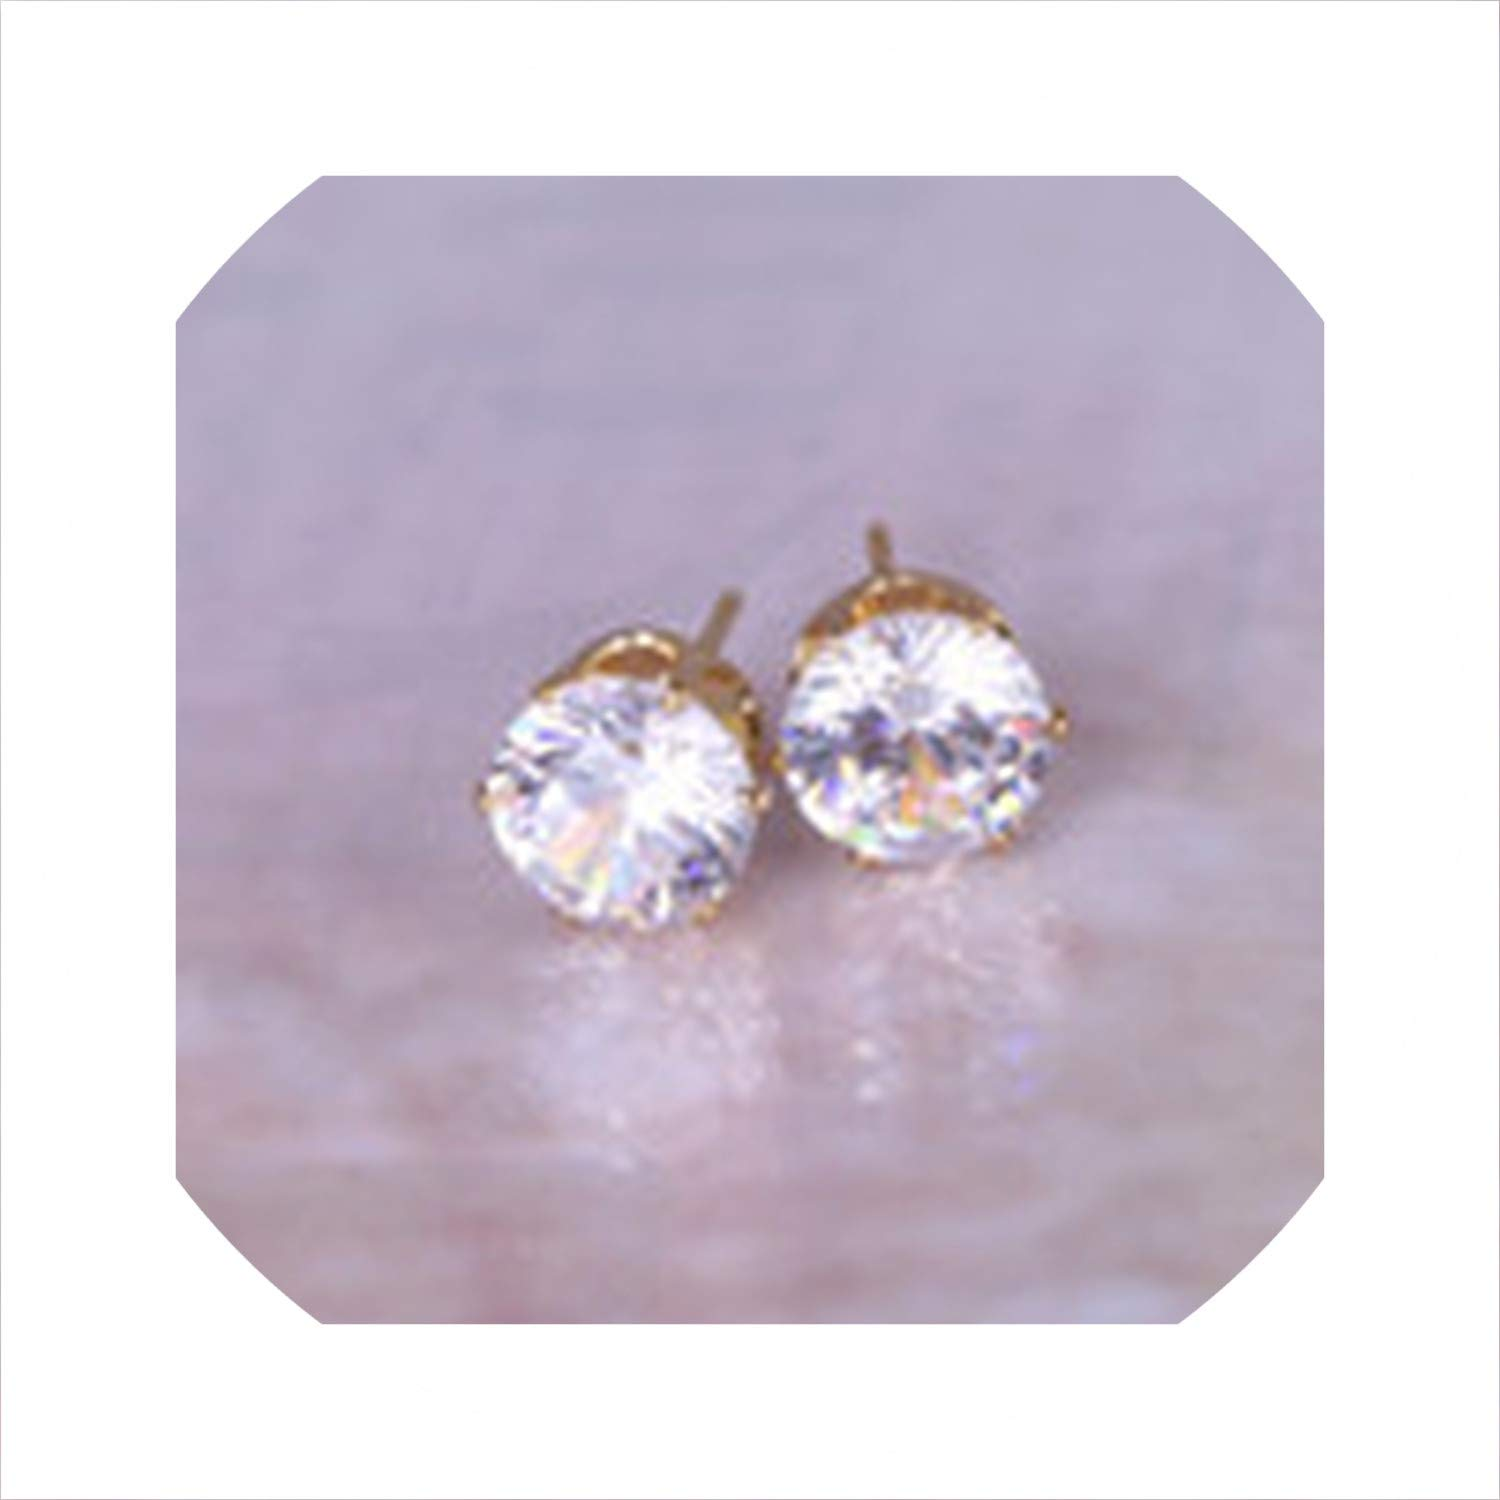 hdfhdfhd 2019 Hot Jewelry Gold Zircon Sweet Stud Earrings 19 Color Earring for Girls Christmas for Woman,Platinum Red